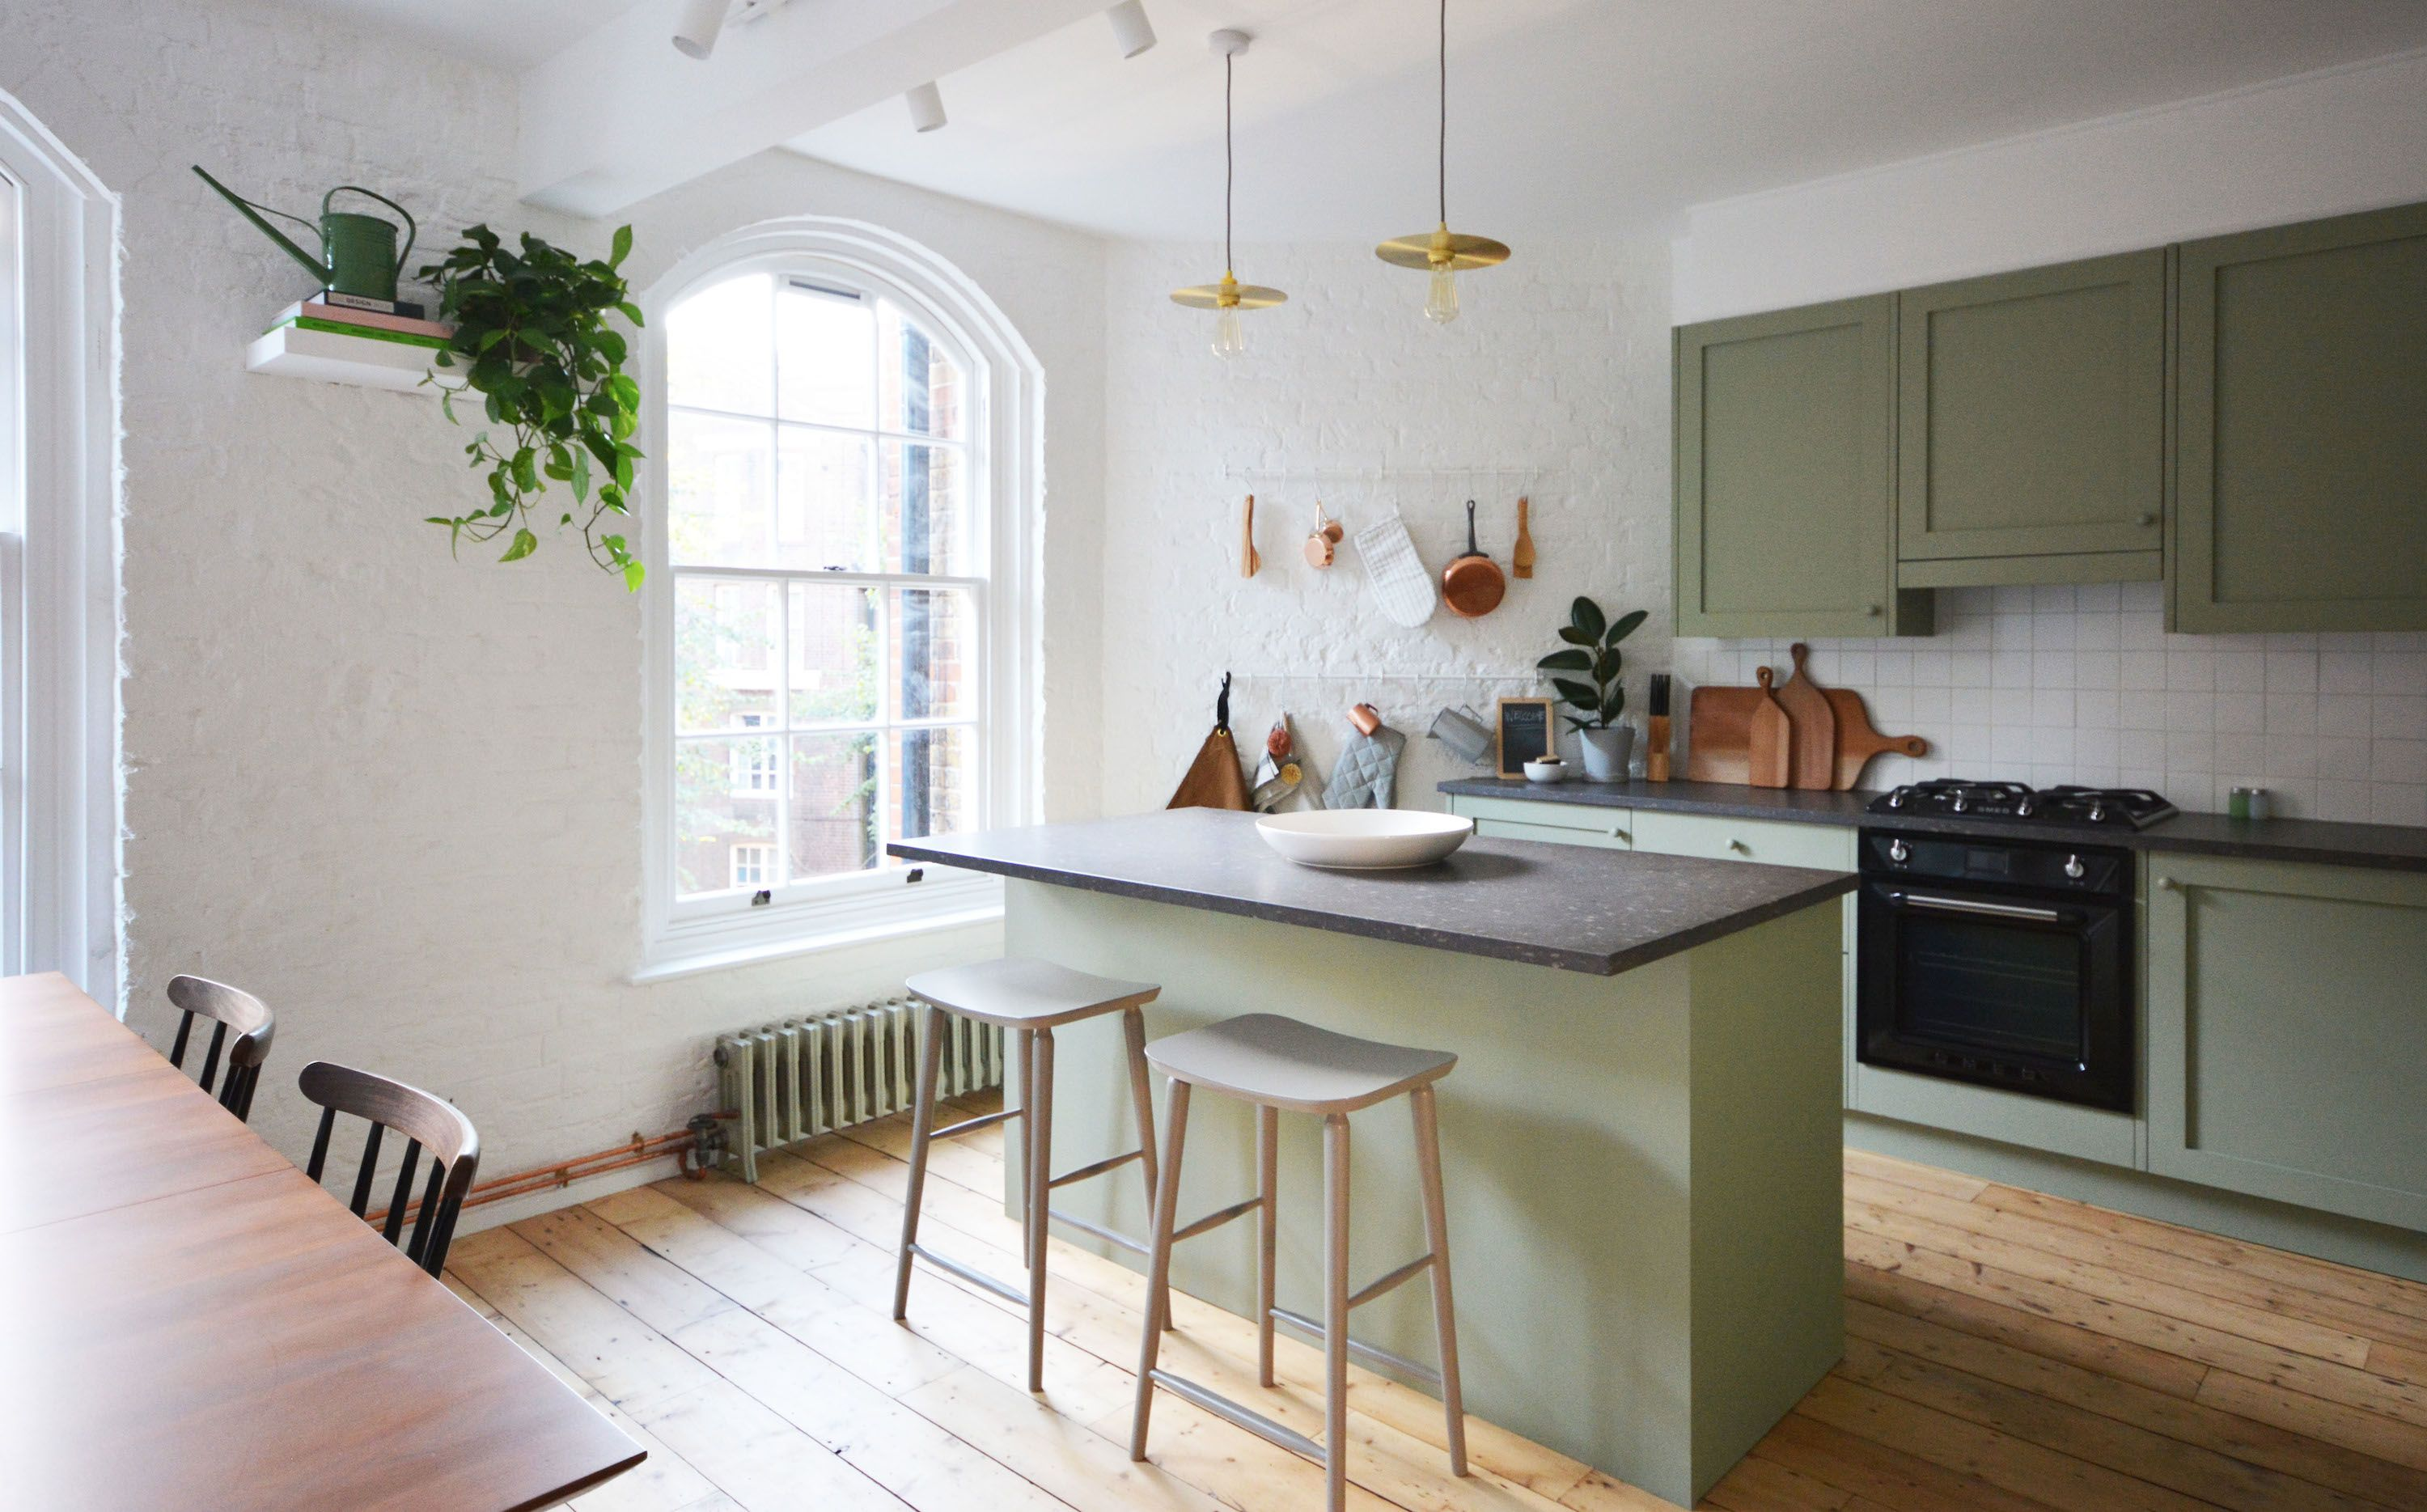 Minty Hues And Plants In The Kitchen. Flat 15 Design Blog U2013 Shoreditch, East